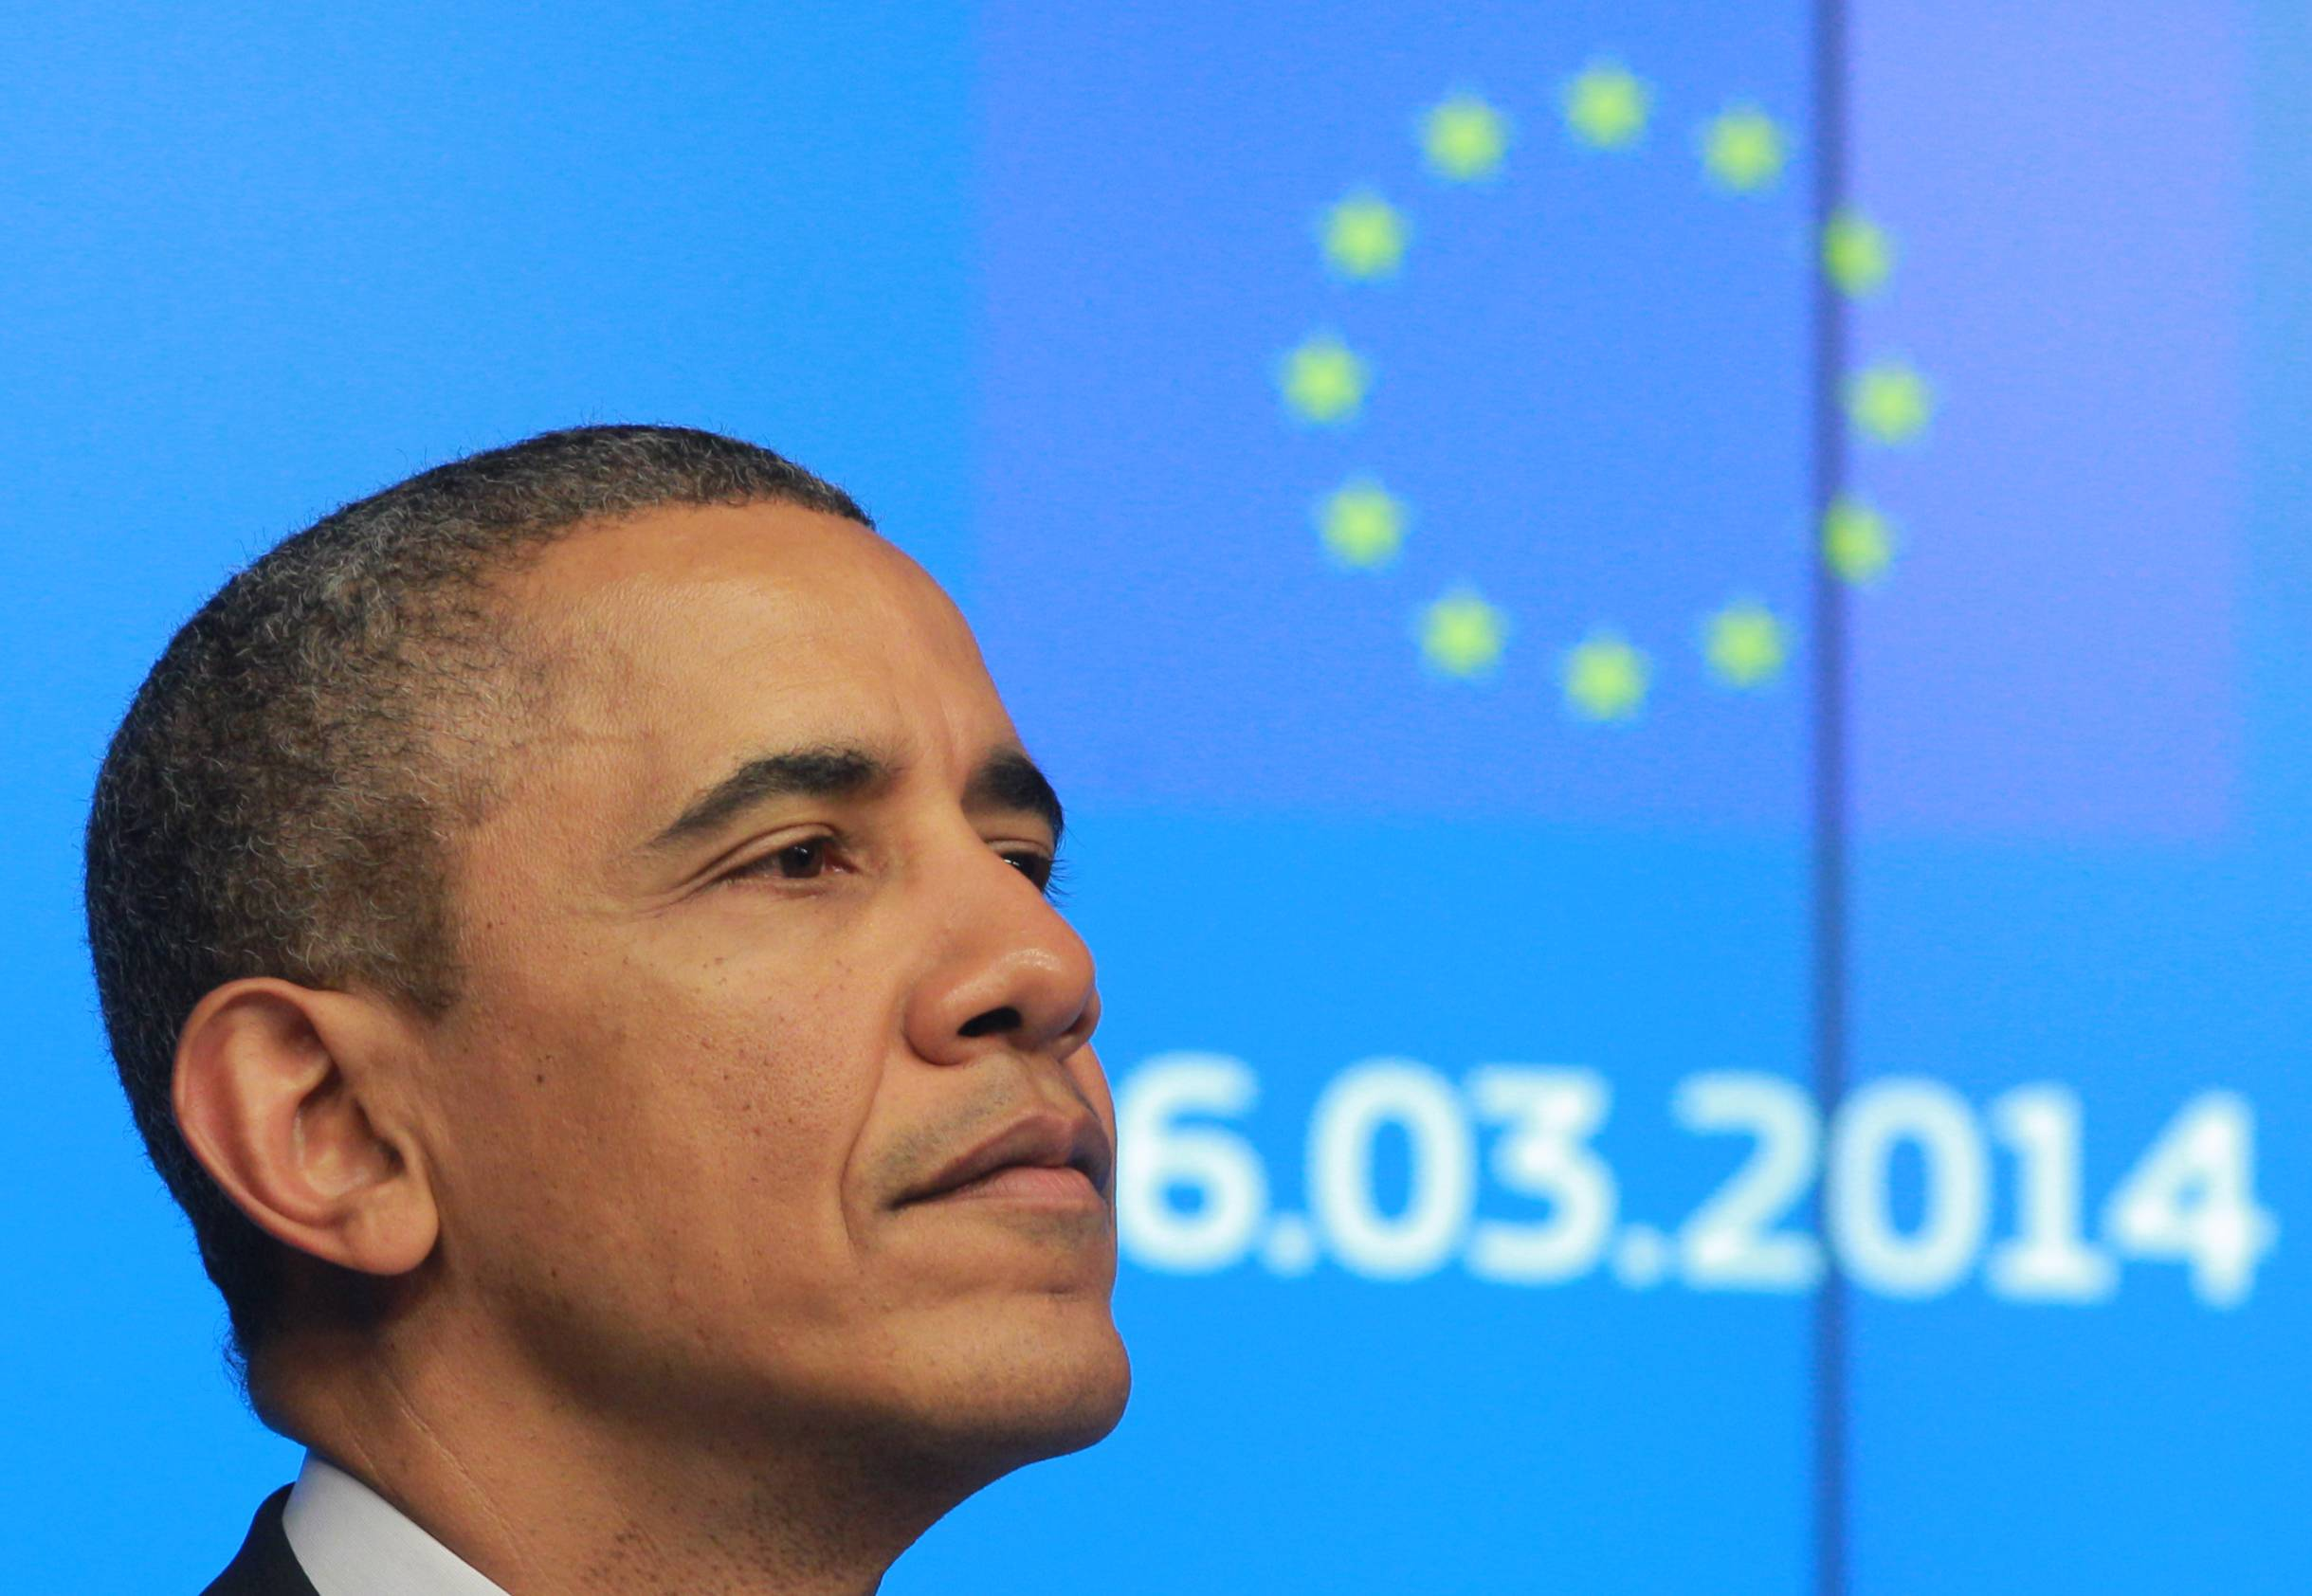 Obama plays up US-Europe bond amid Russia tension